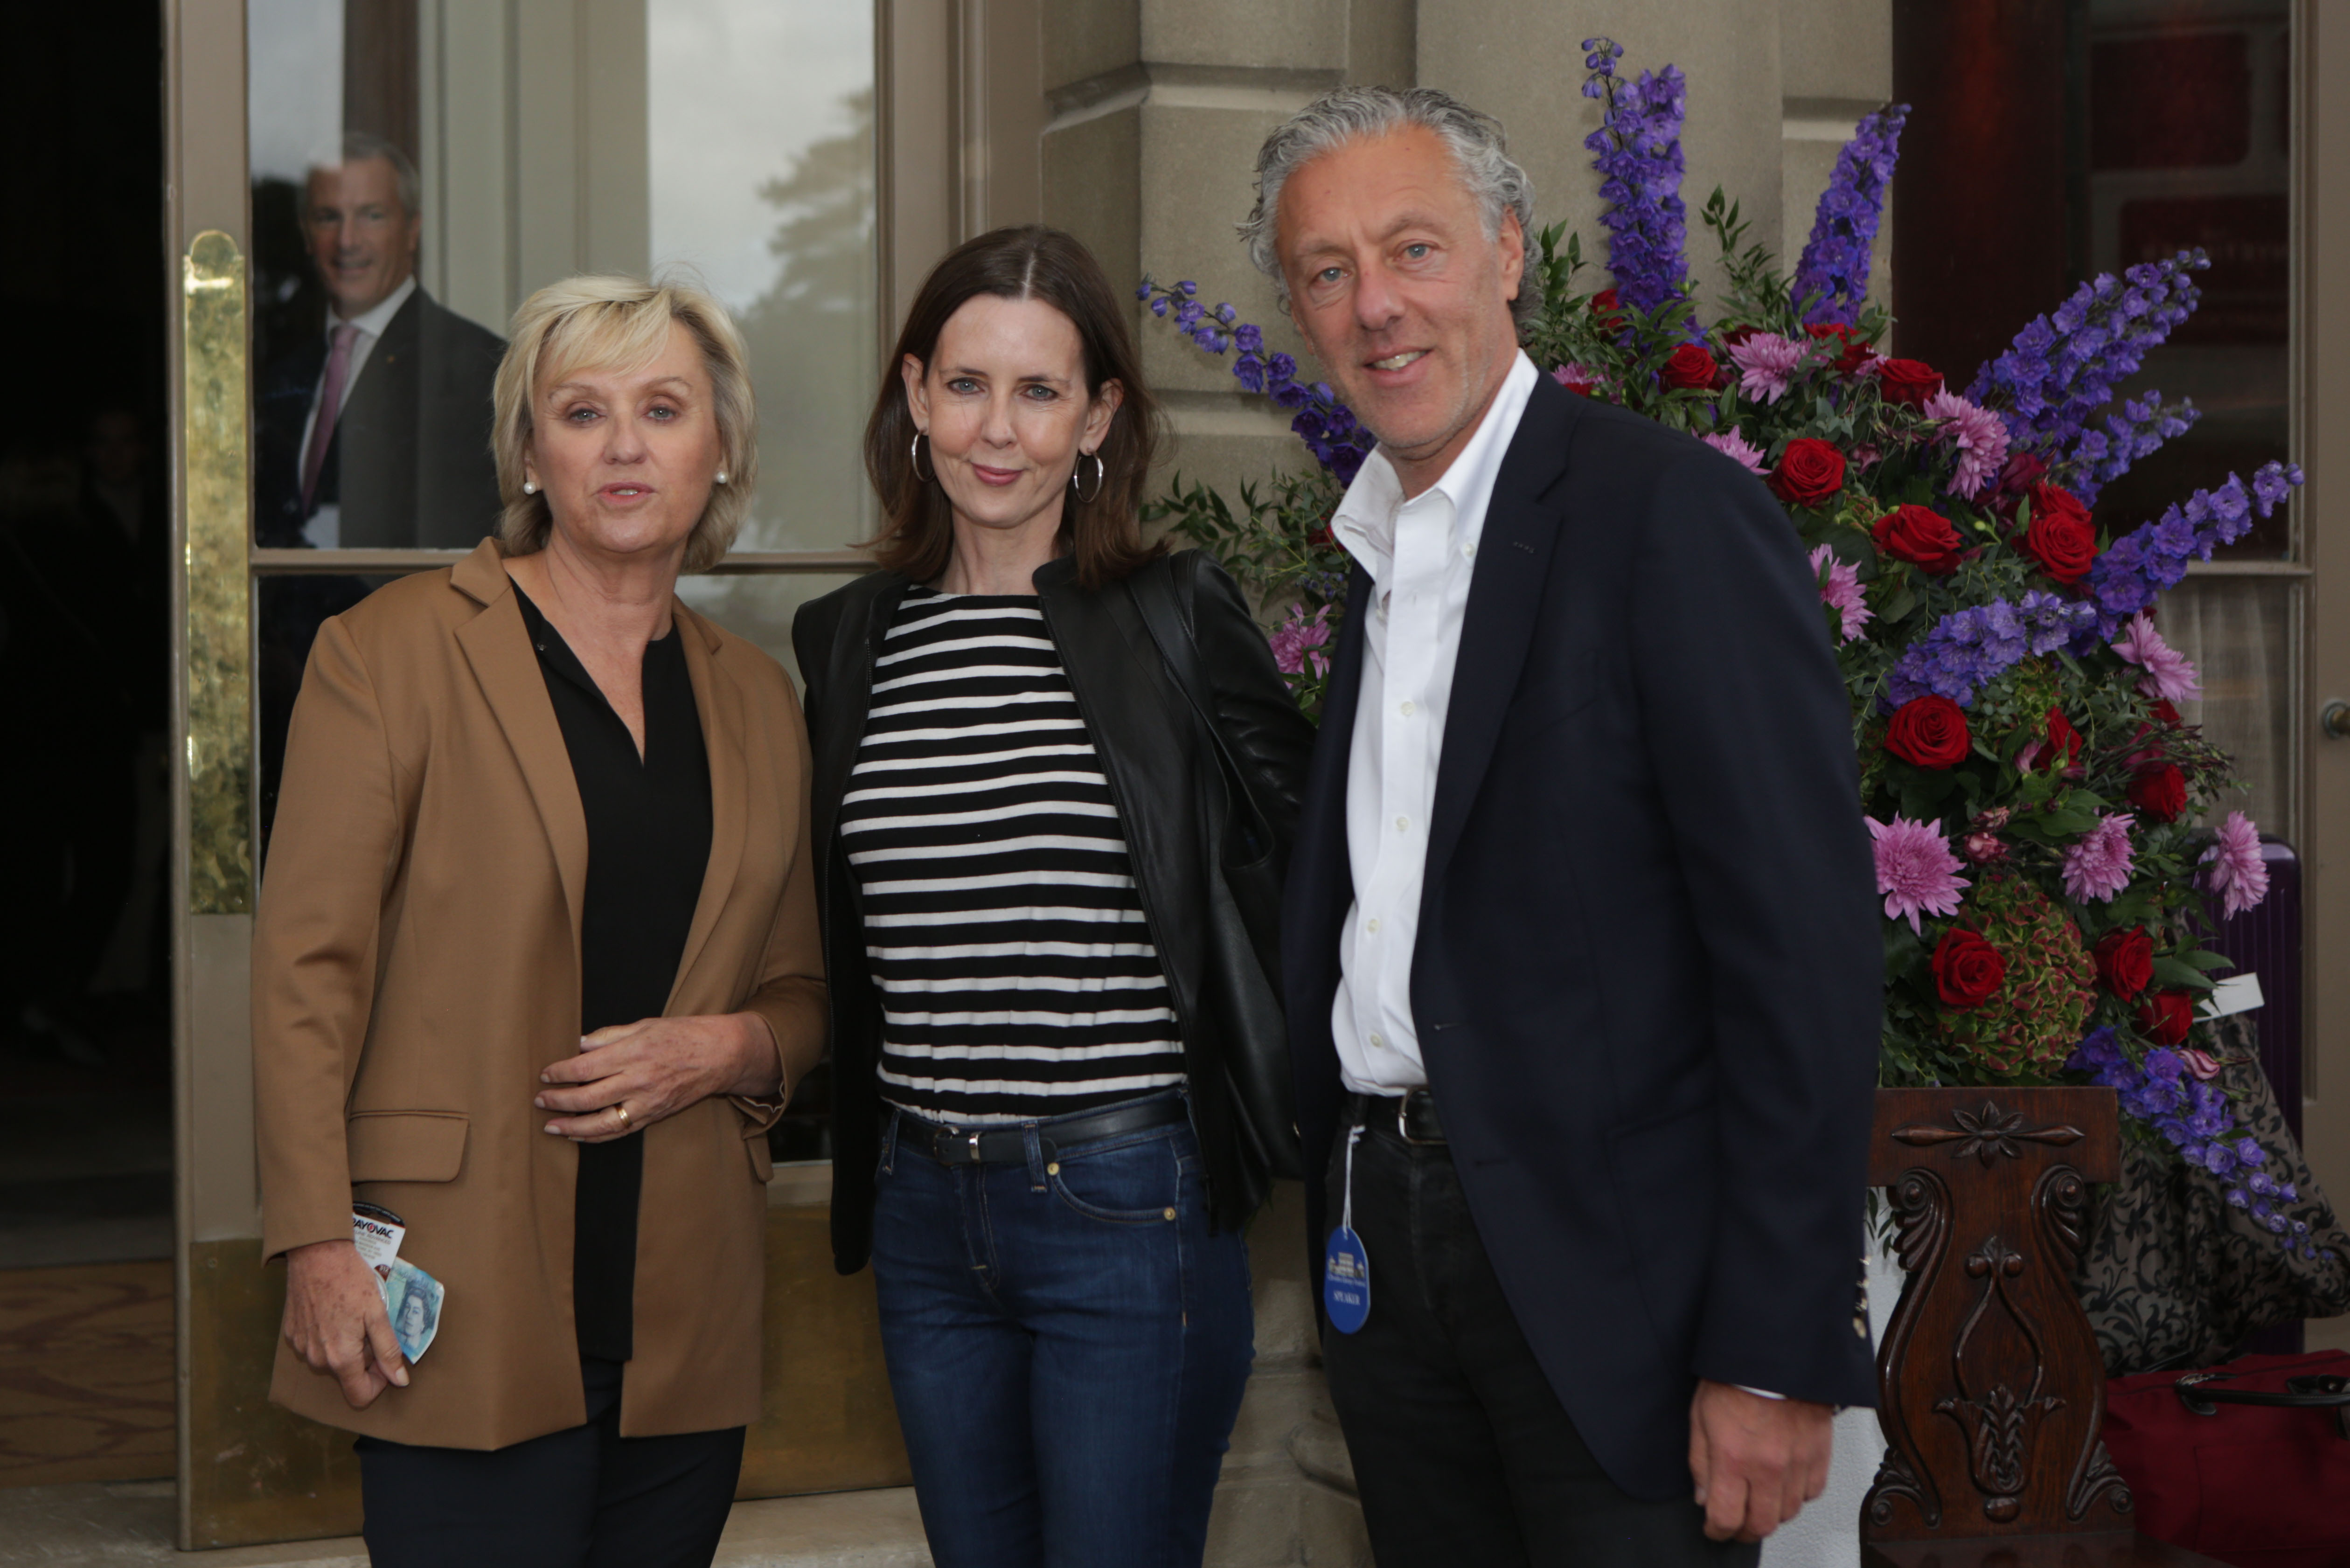 Tina Brown, Susan Gilchrist and Ian Livingstone at Cliveden Literary Festival